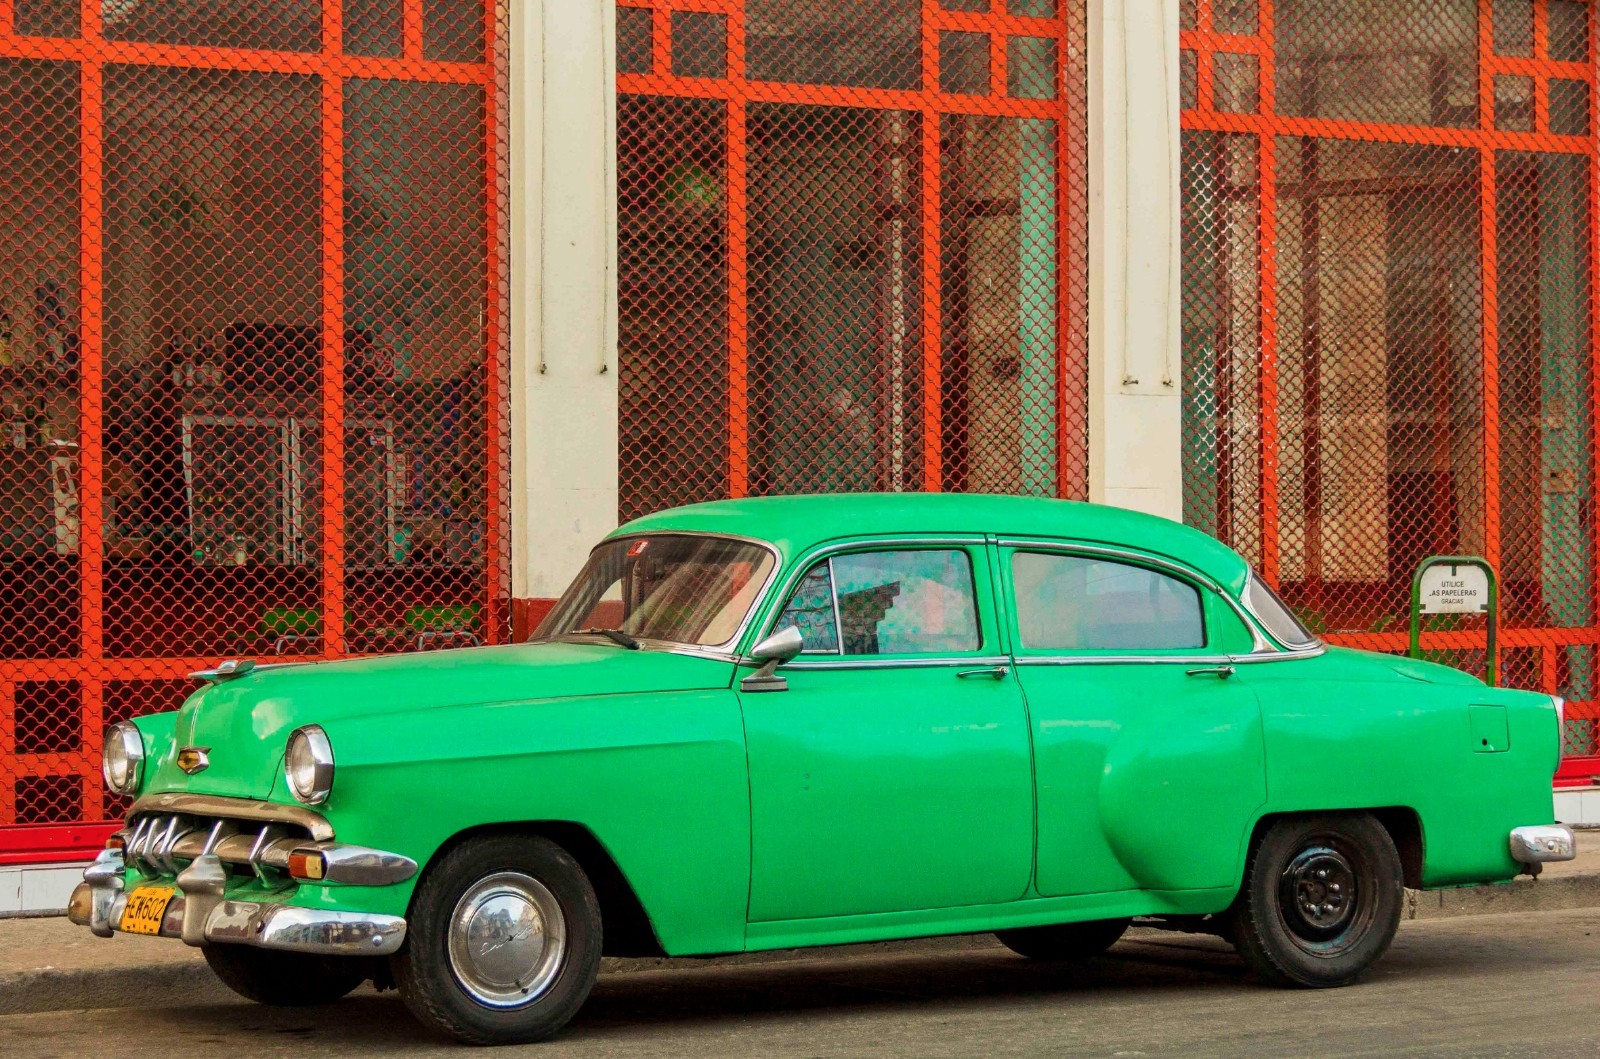 Cuba Lifts Ban on New Cars After Almost 55 Years - autoevolution